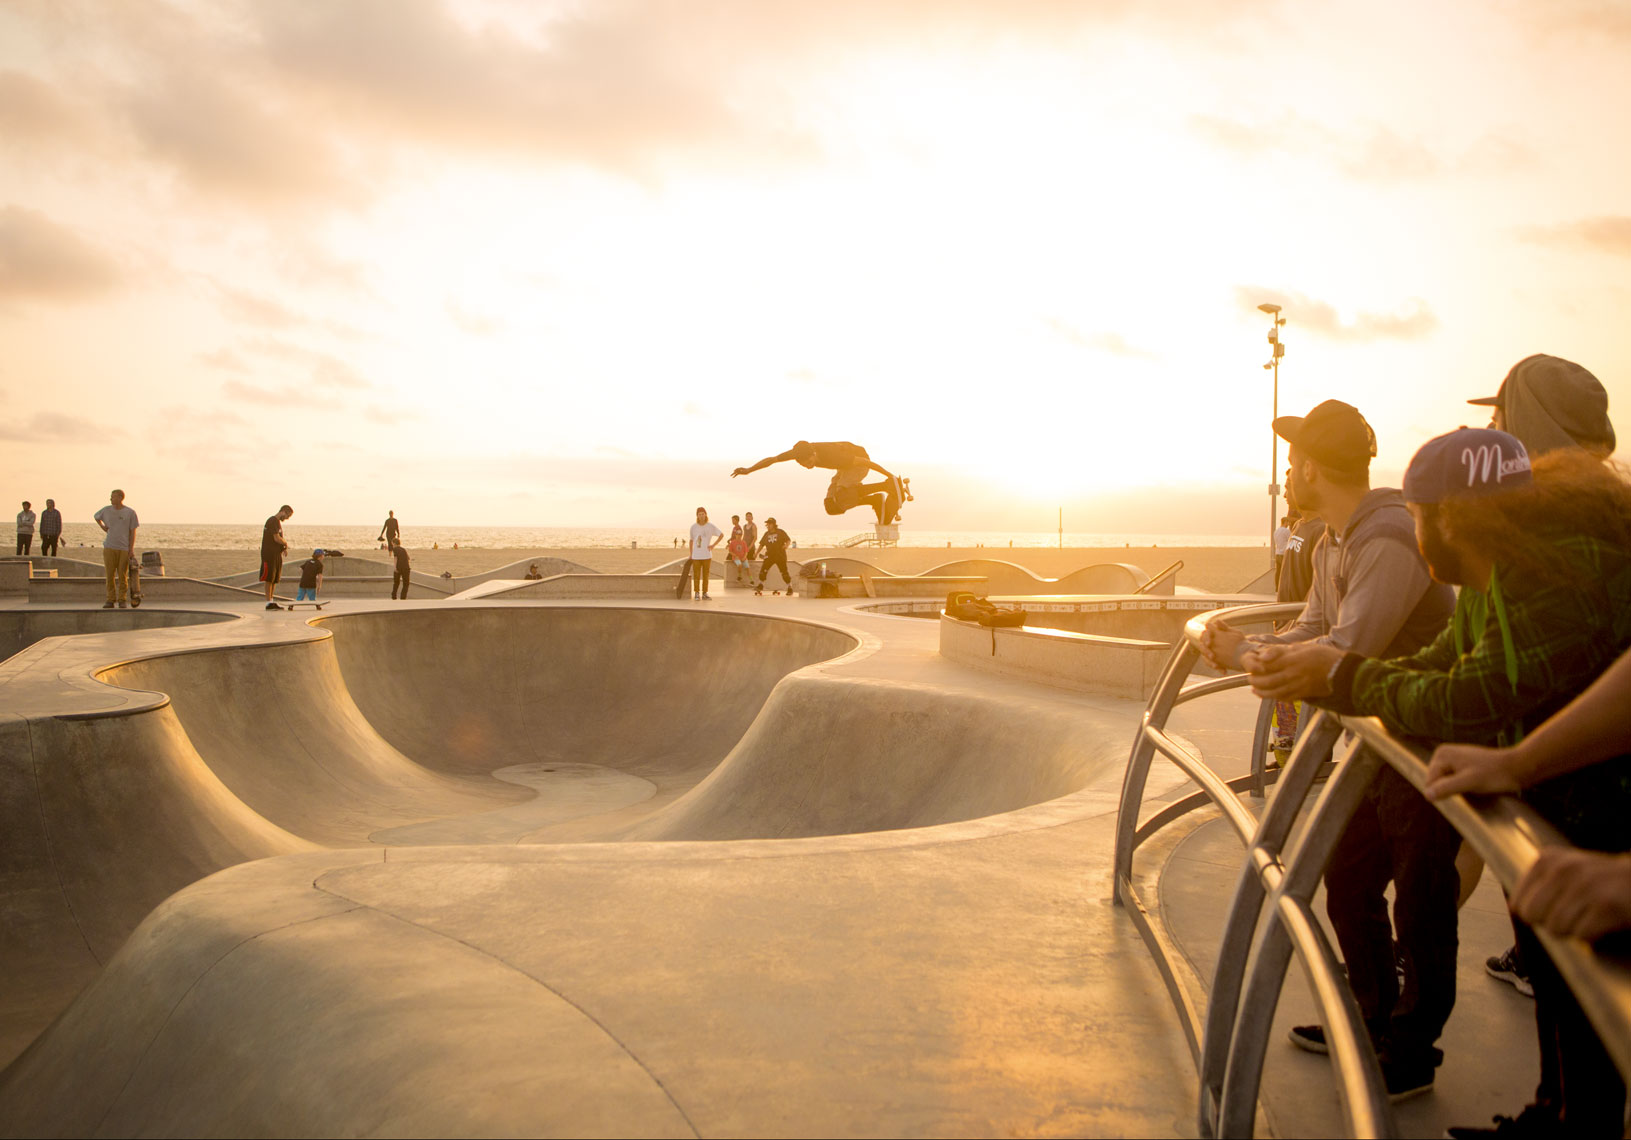 20_Life_Kris_Davidson_National_Geographic_Venice_Beach_Skateboard